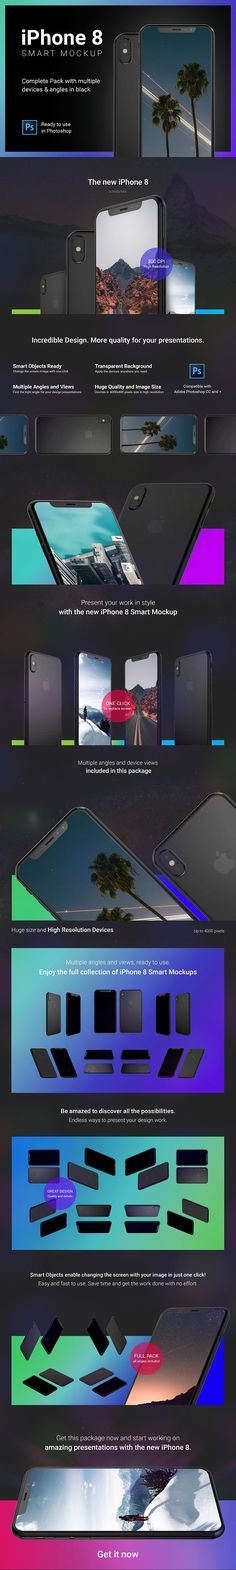 iPhone 8 Mockup Full Pack Mock-ups by caiocall on @creativemarket